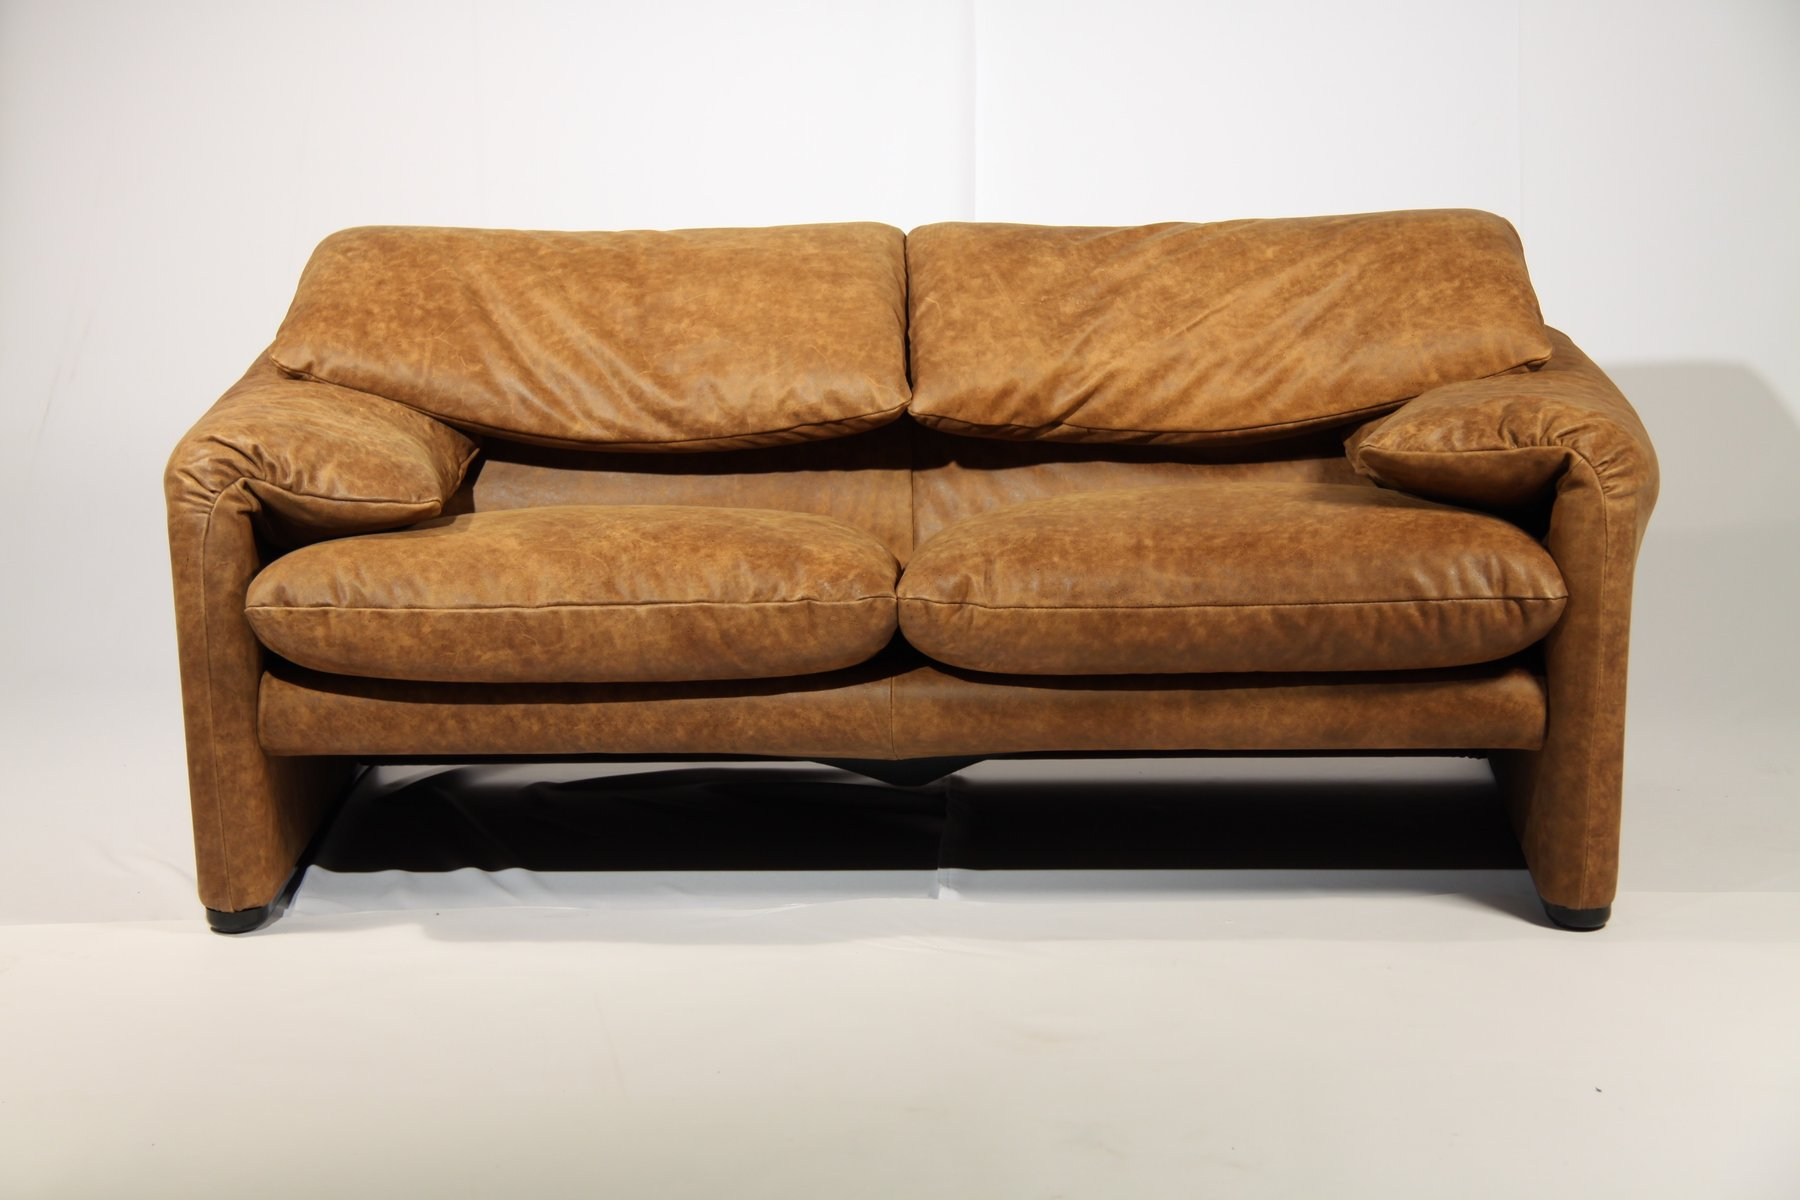 vintage maralunga sofa by vico magistretti for cassina. Black Bedroom Furniture Sets. Home Design Ideas